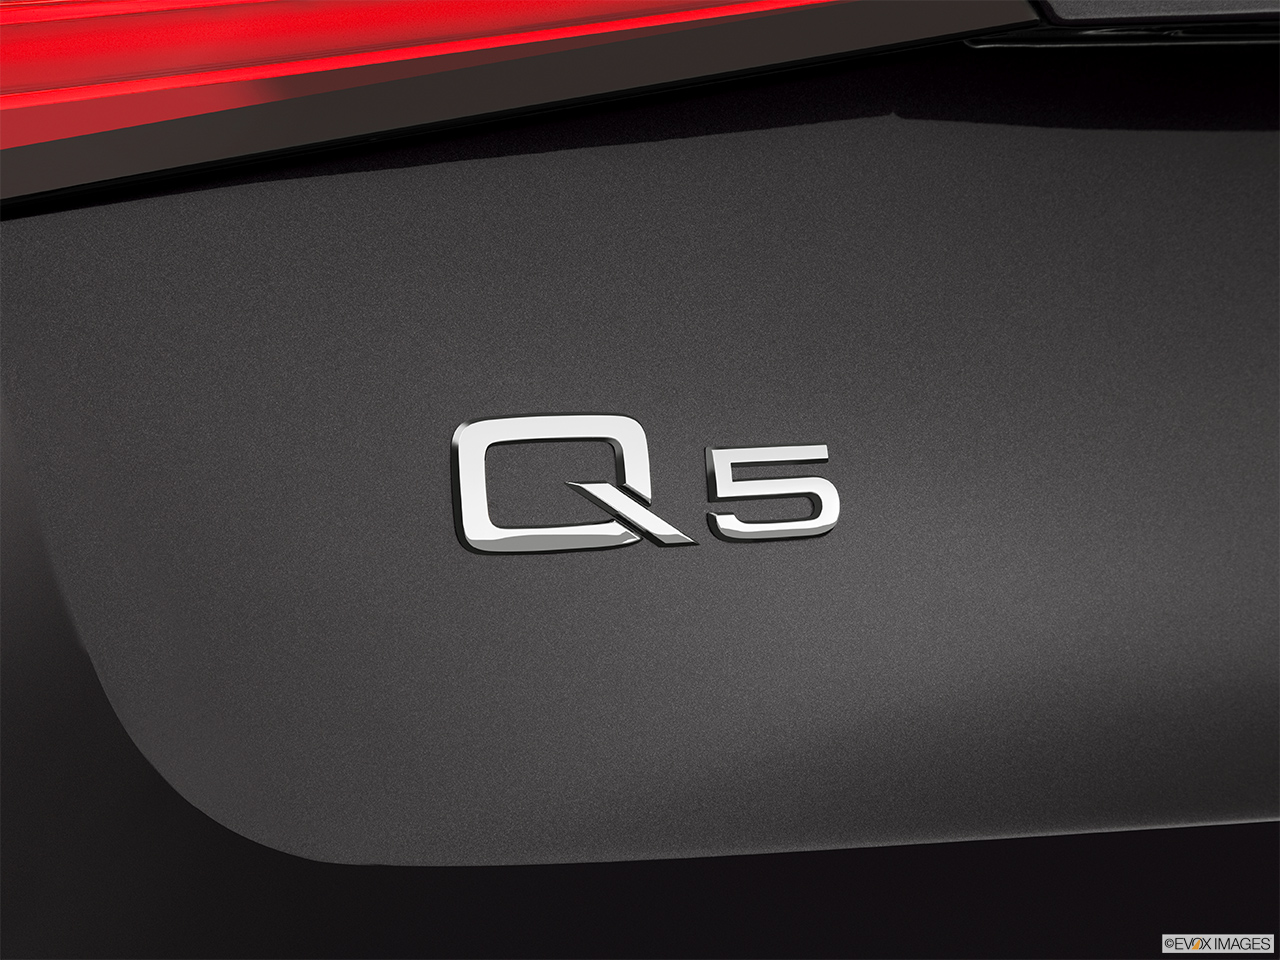 2014 Audi Q5 Quattro 2 0t Premium Plus Rear Model Badge